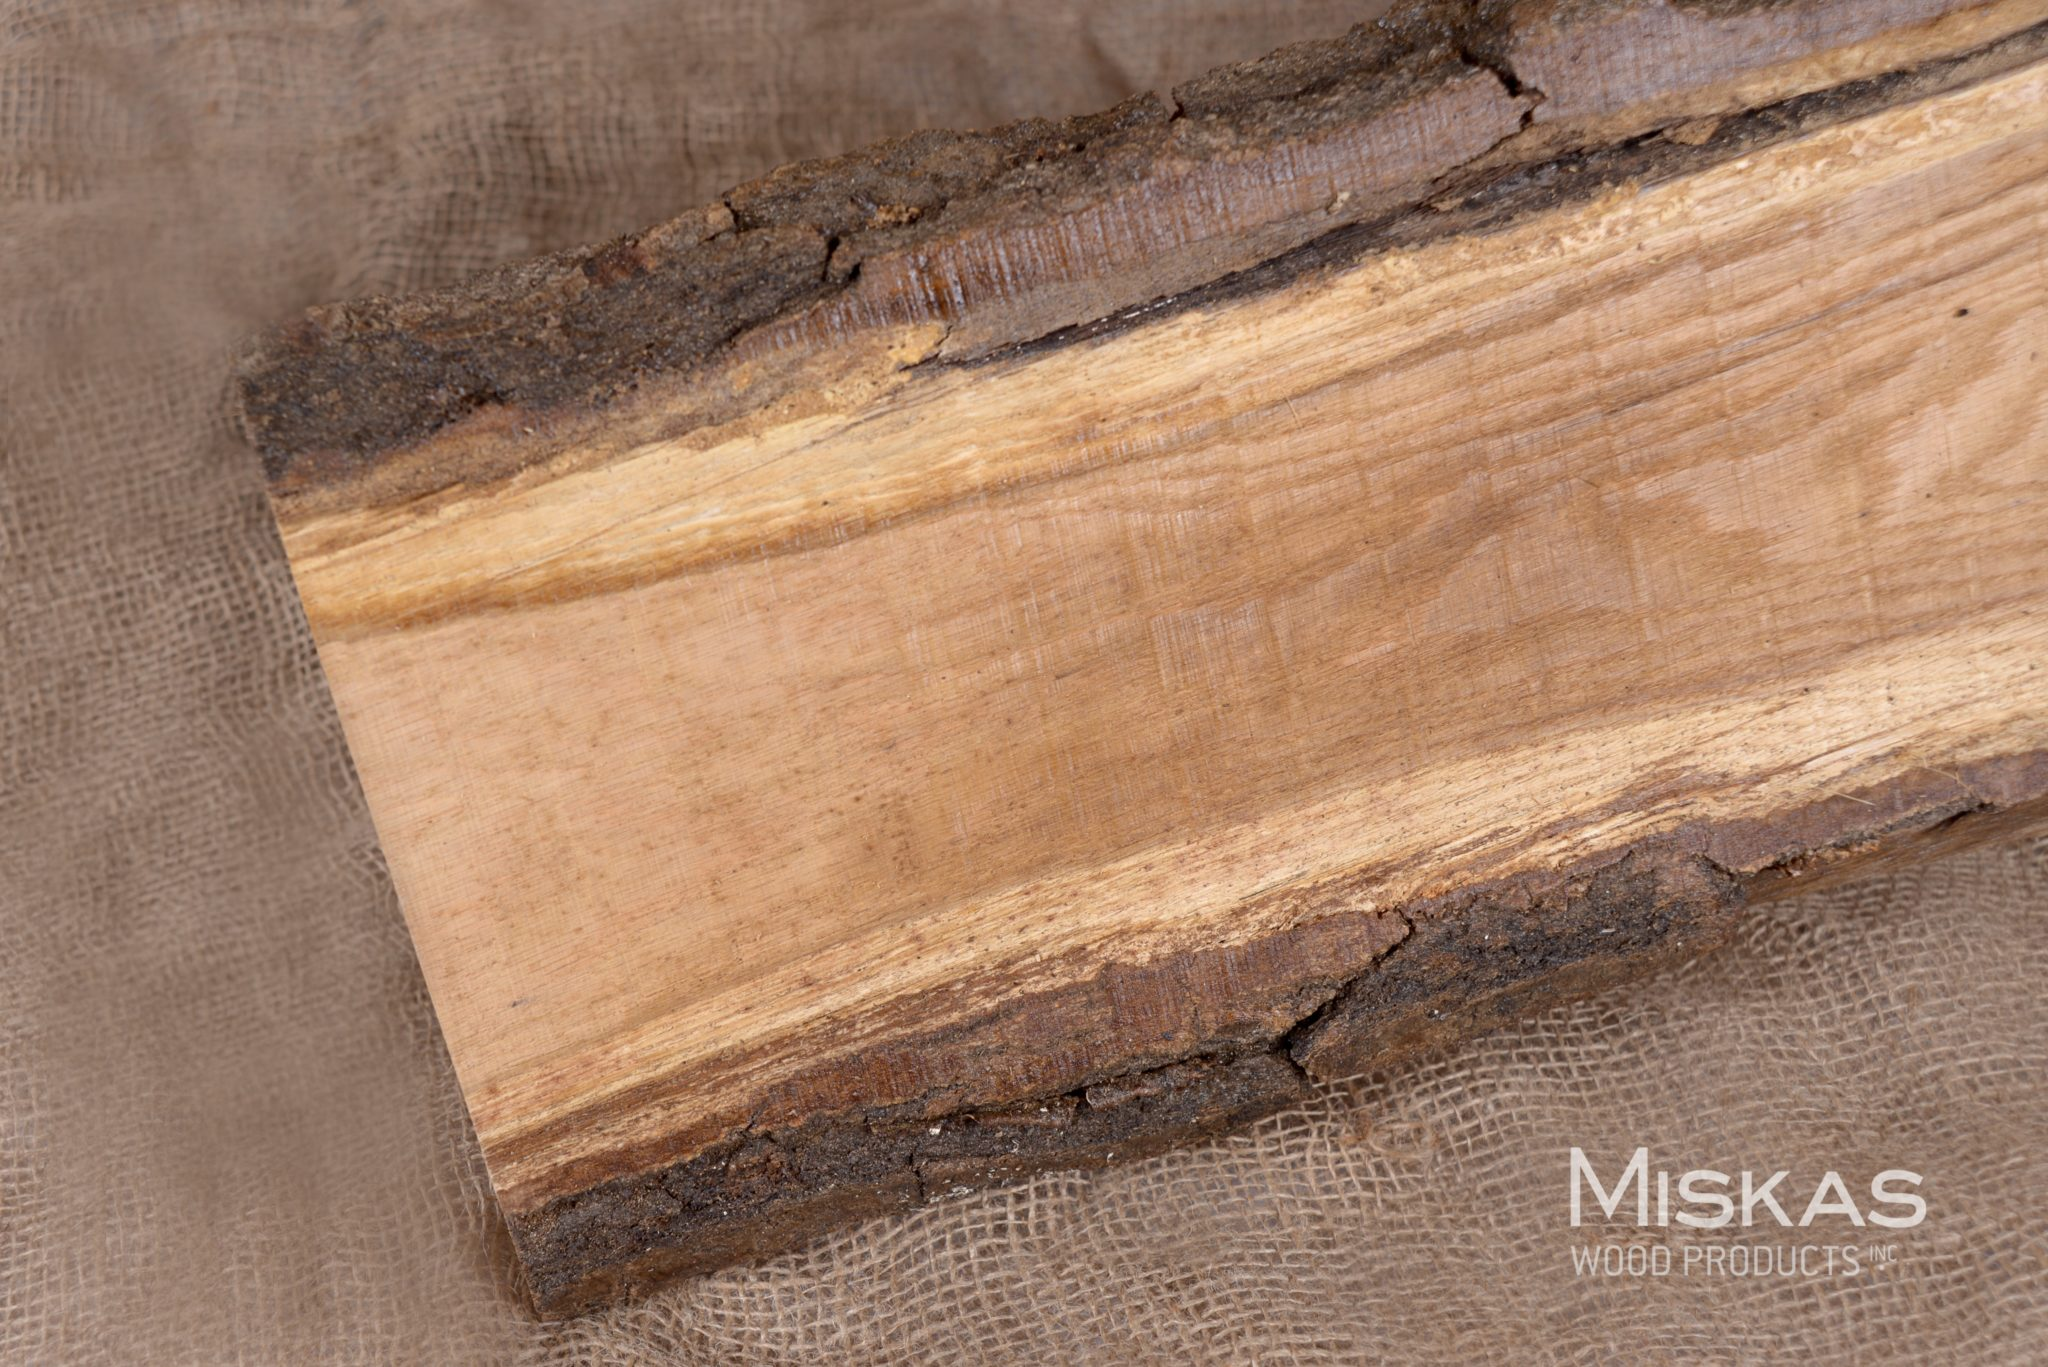 Red oak live edge slabs miskas wood products inc for Finished wood slabs